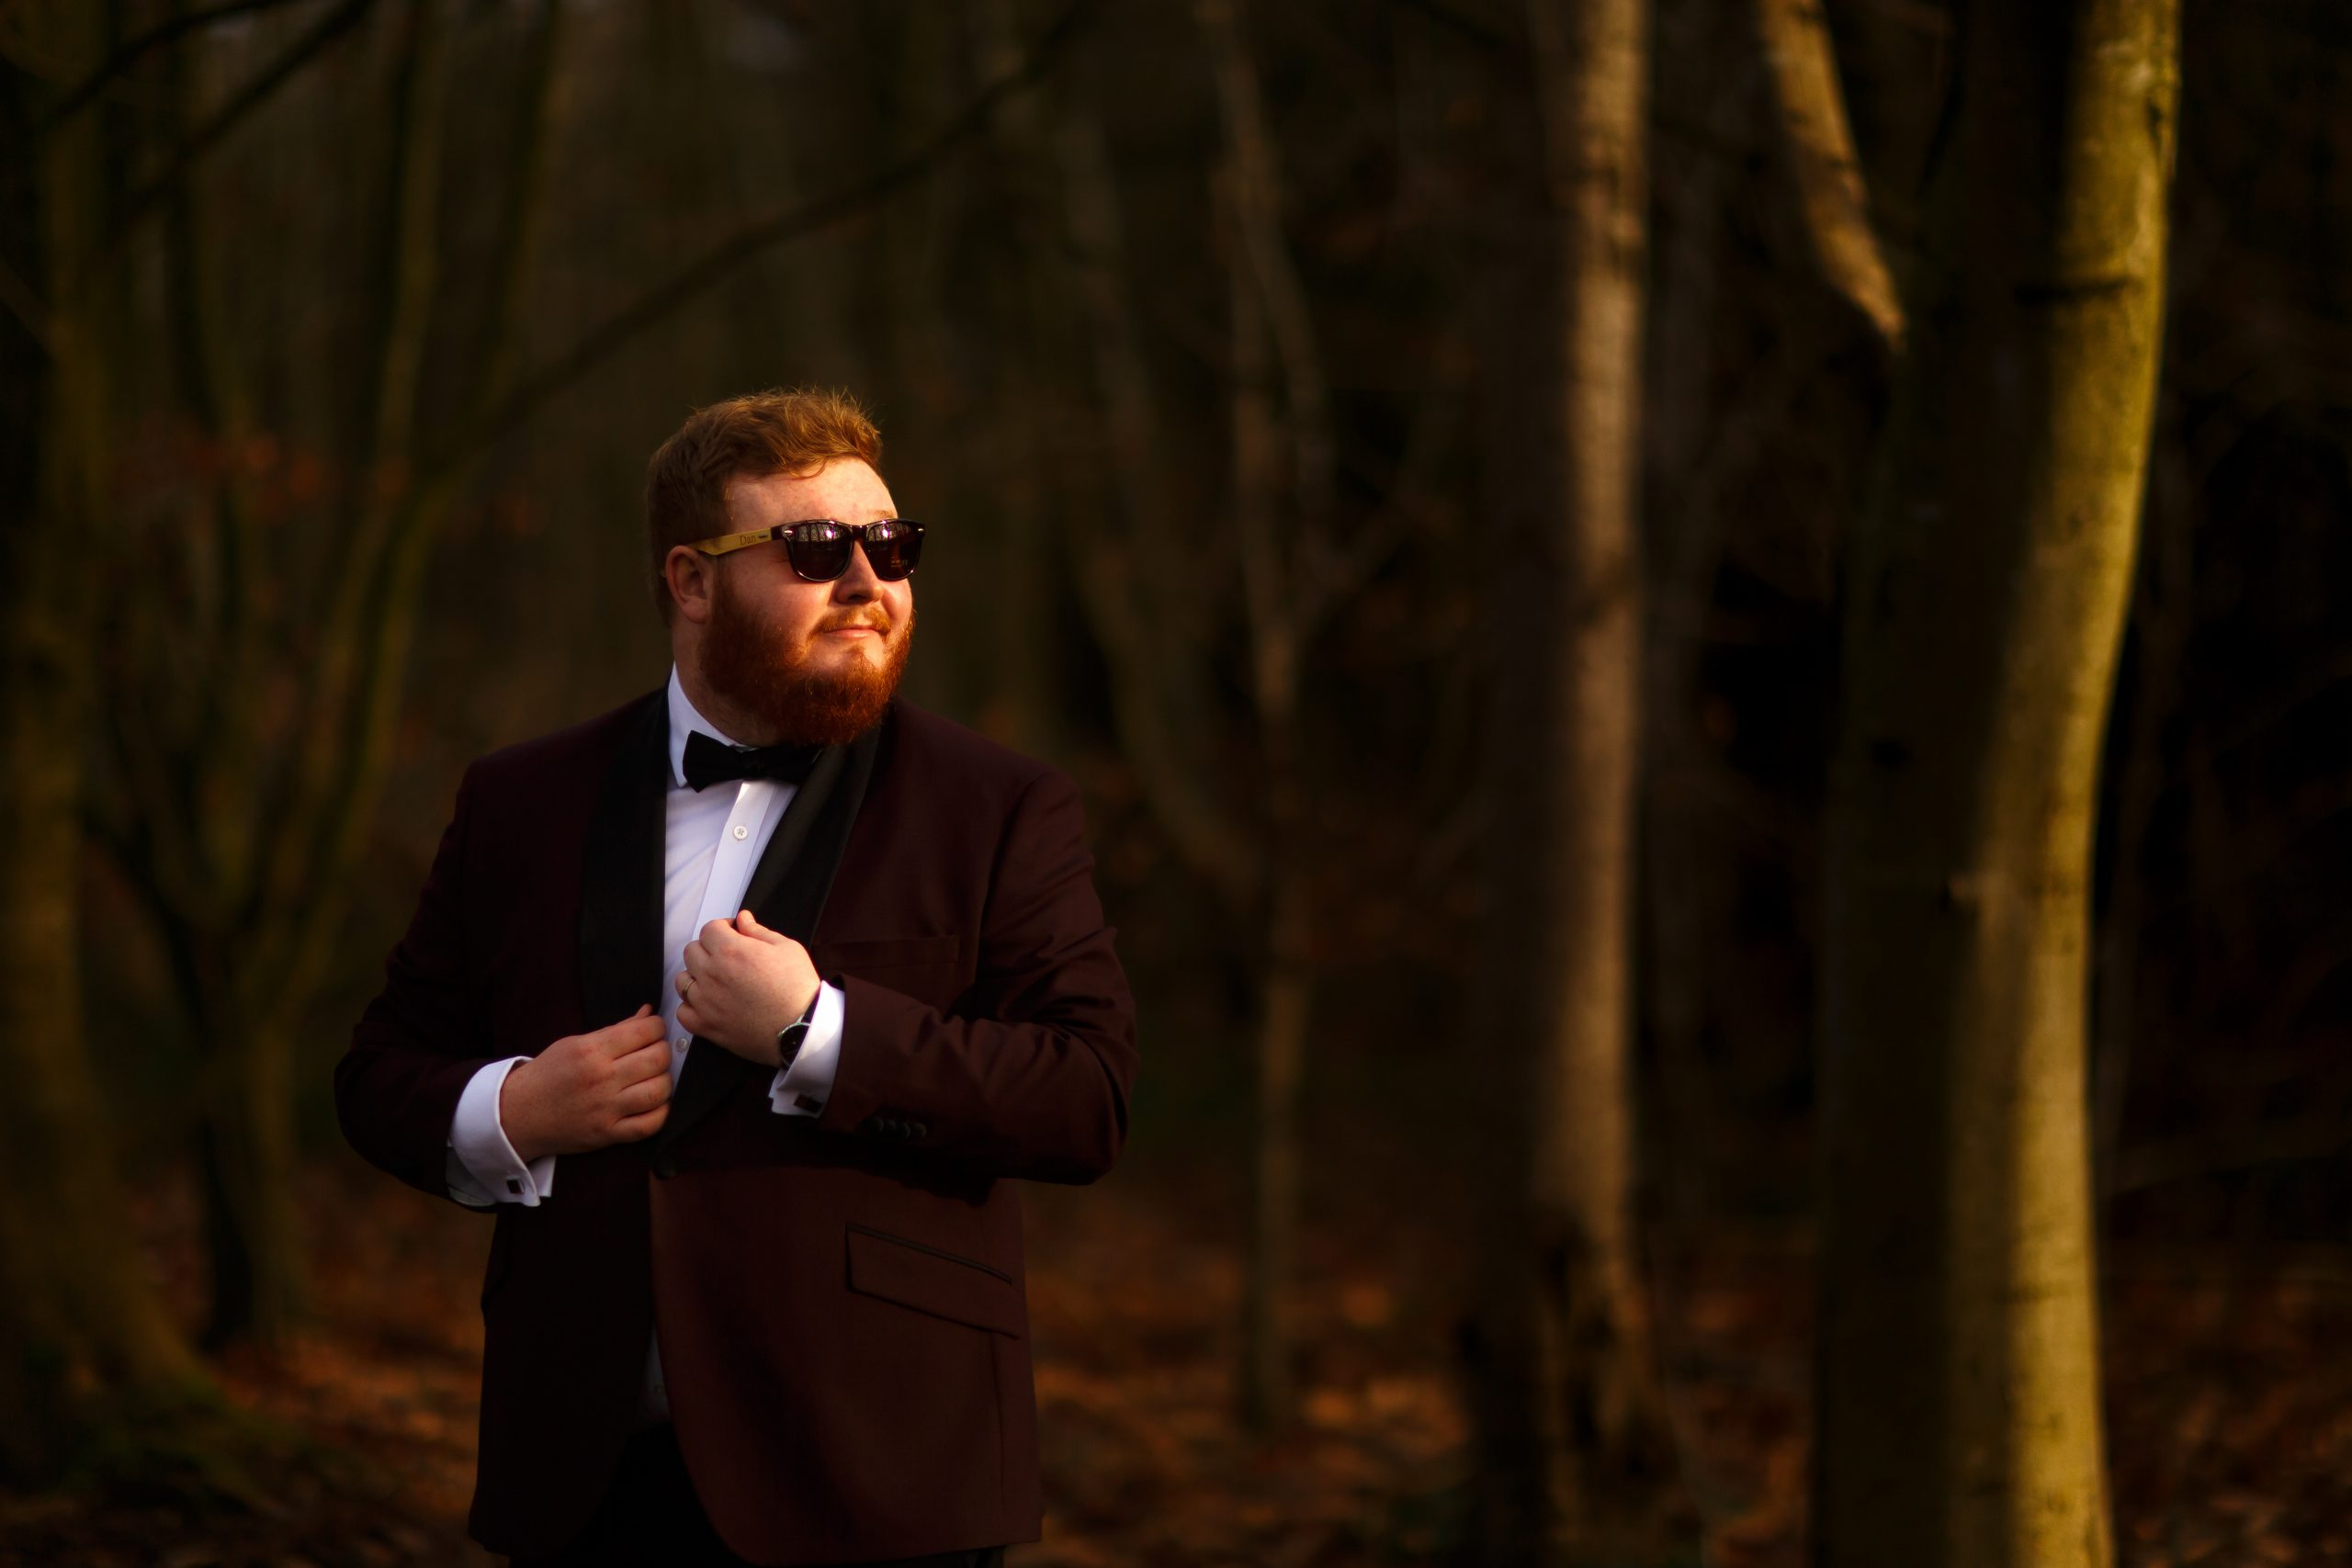 Groom wearing maroon tuxedo in the woodland at Foxfields Country house wearing sunglasses | Foxfields Country House Wedding Photography